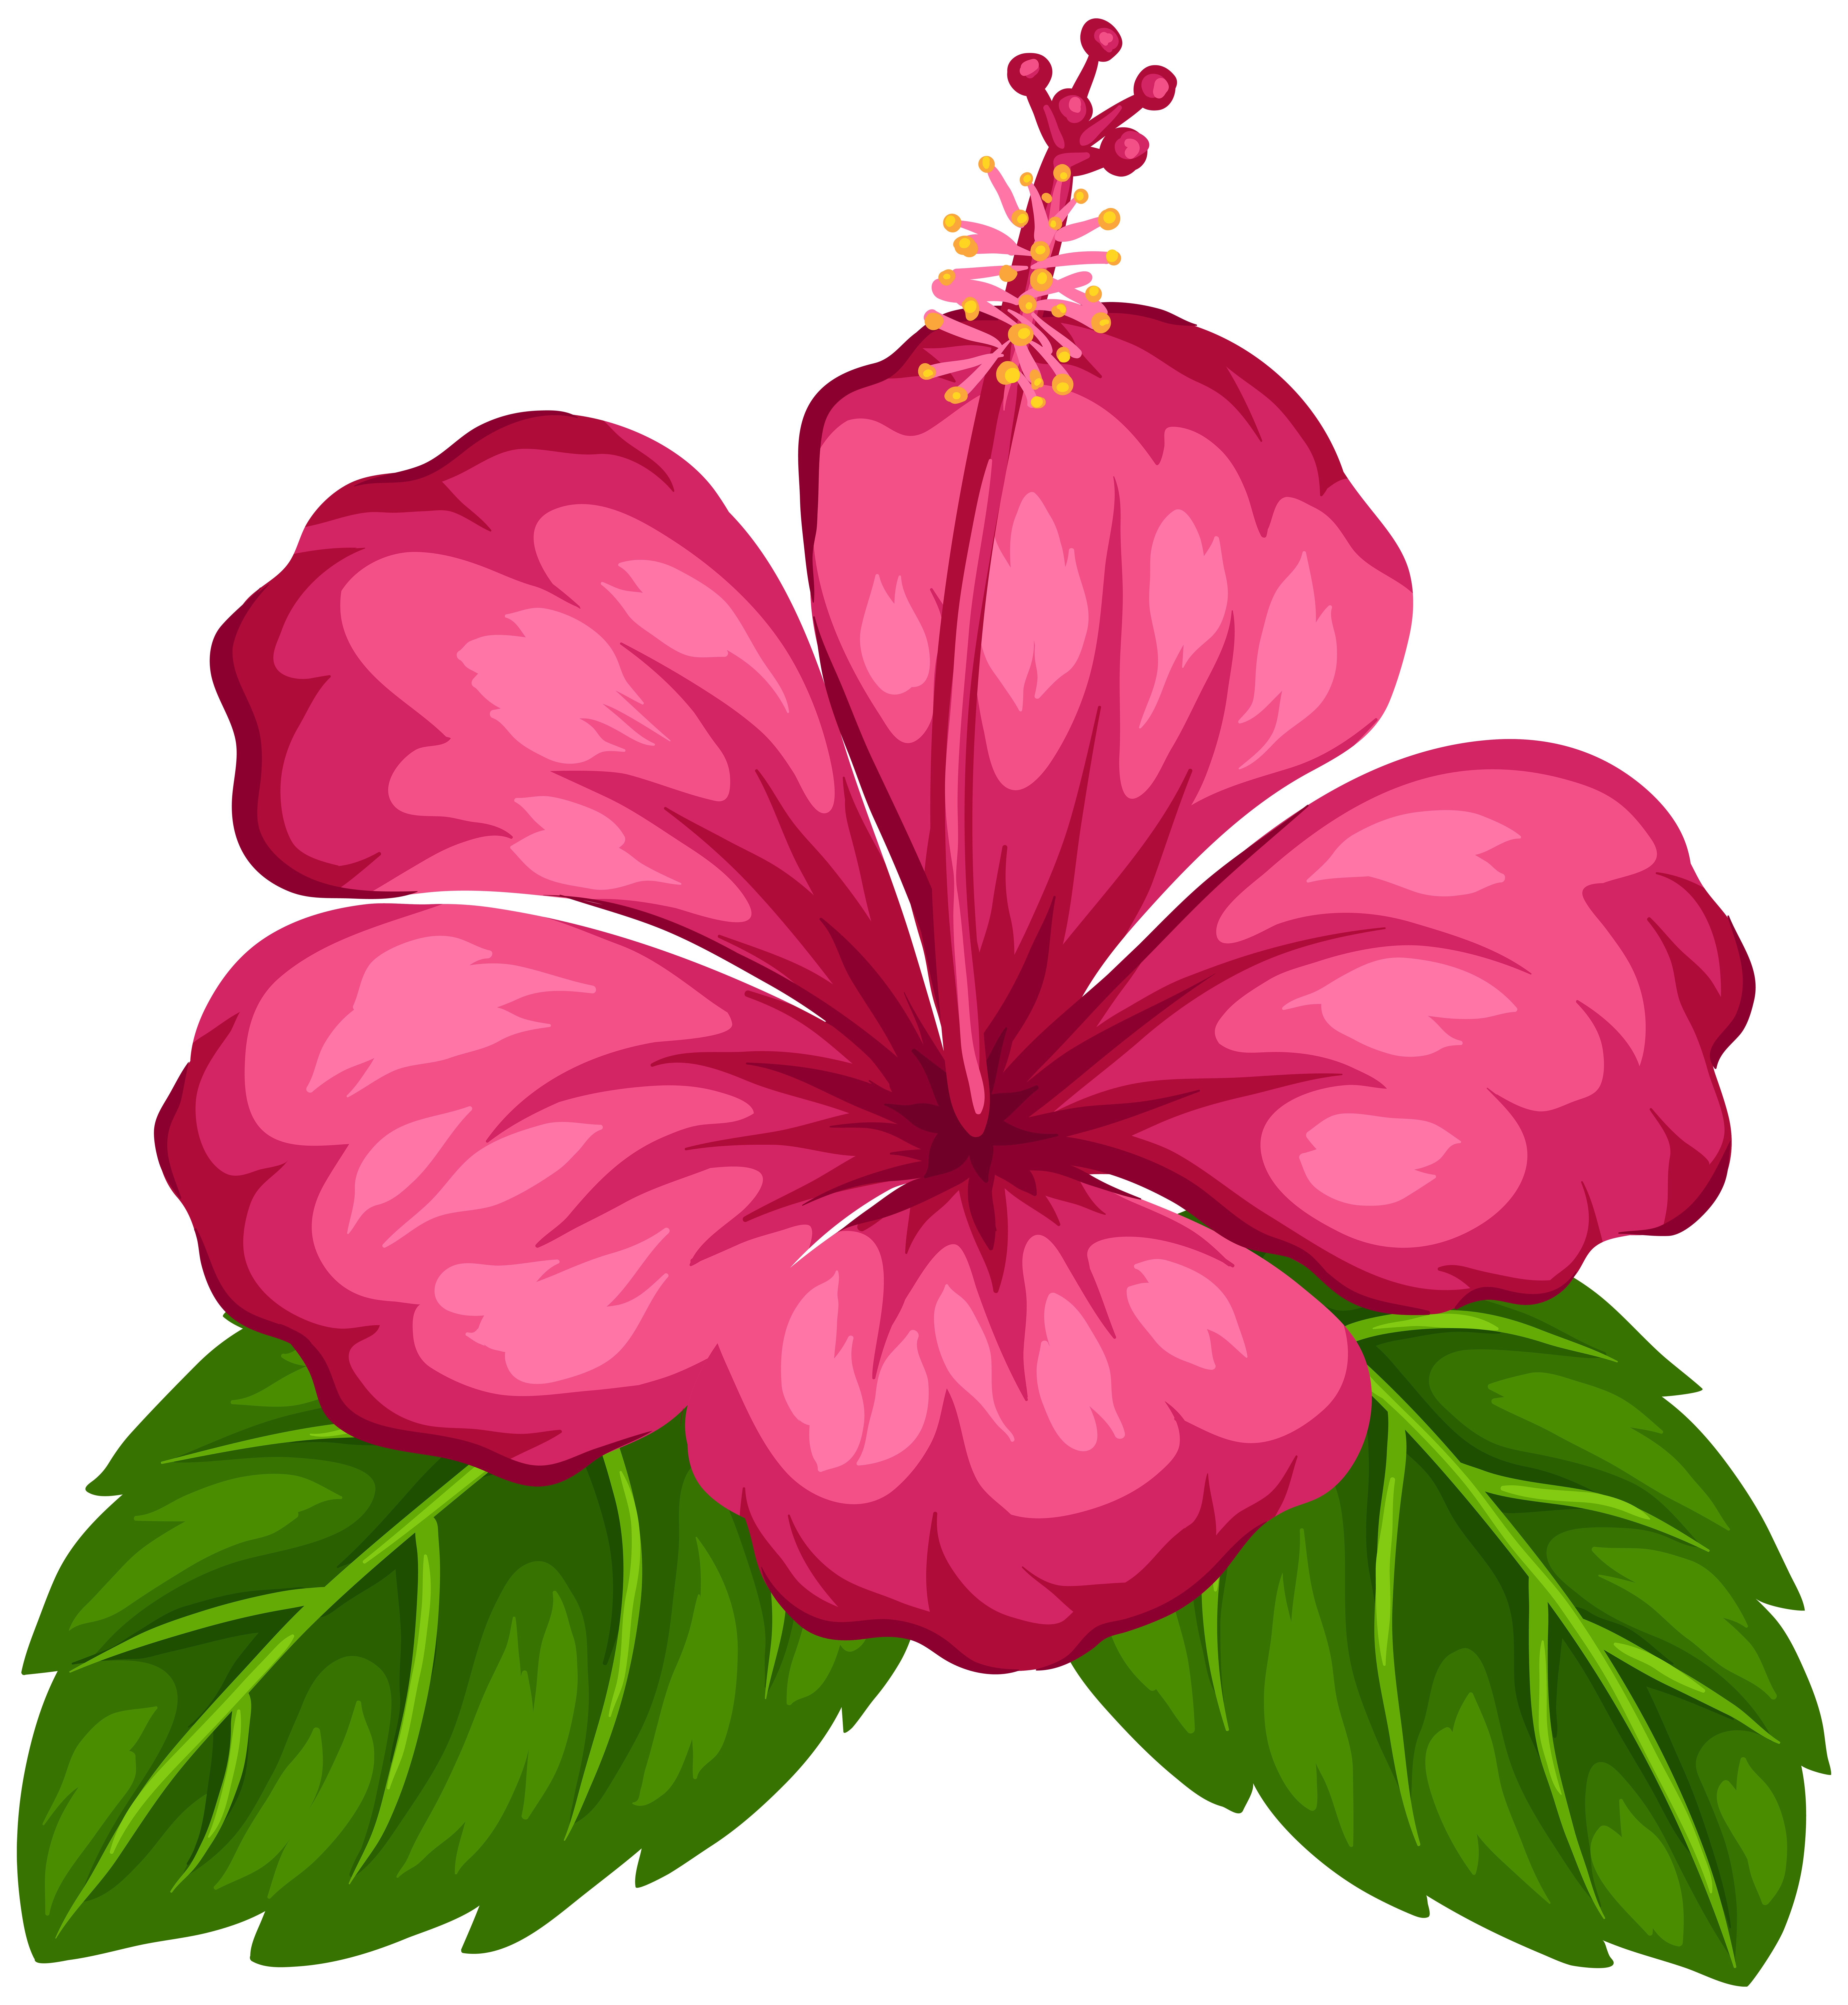 Good Greeting Morning Tropical Flower Android PNG Image